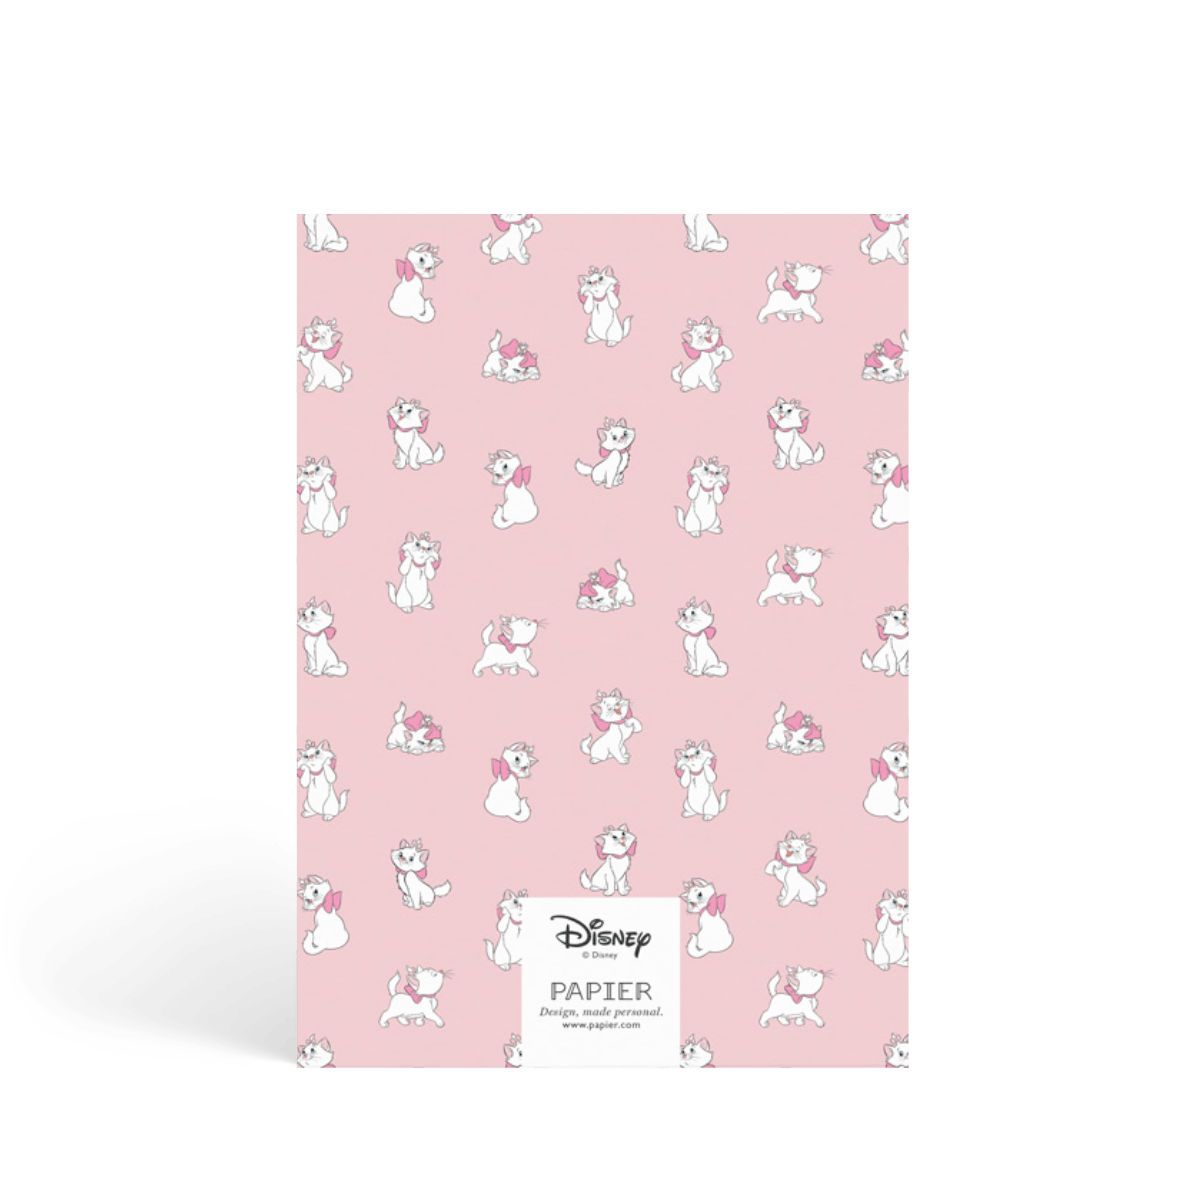 Https%3a%2f%2fwww.papier.com%2fproduct image%2f51313%2f5%2fmarie aristocats 12567 back 1567432370.png?ixlib=rb 1.1